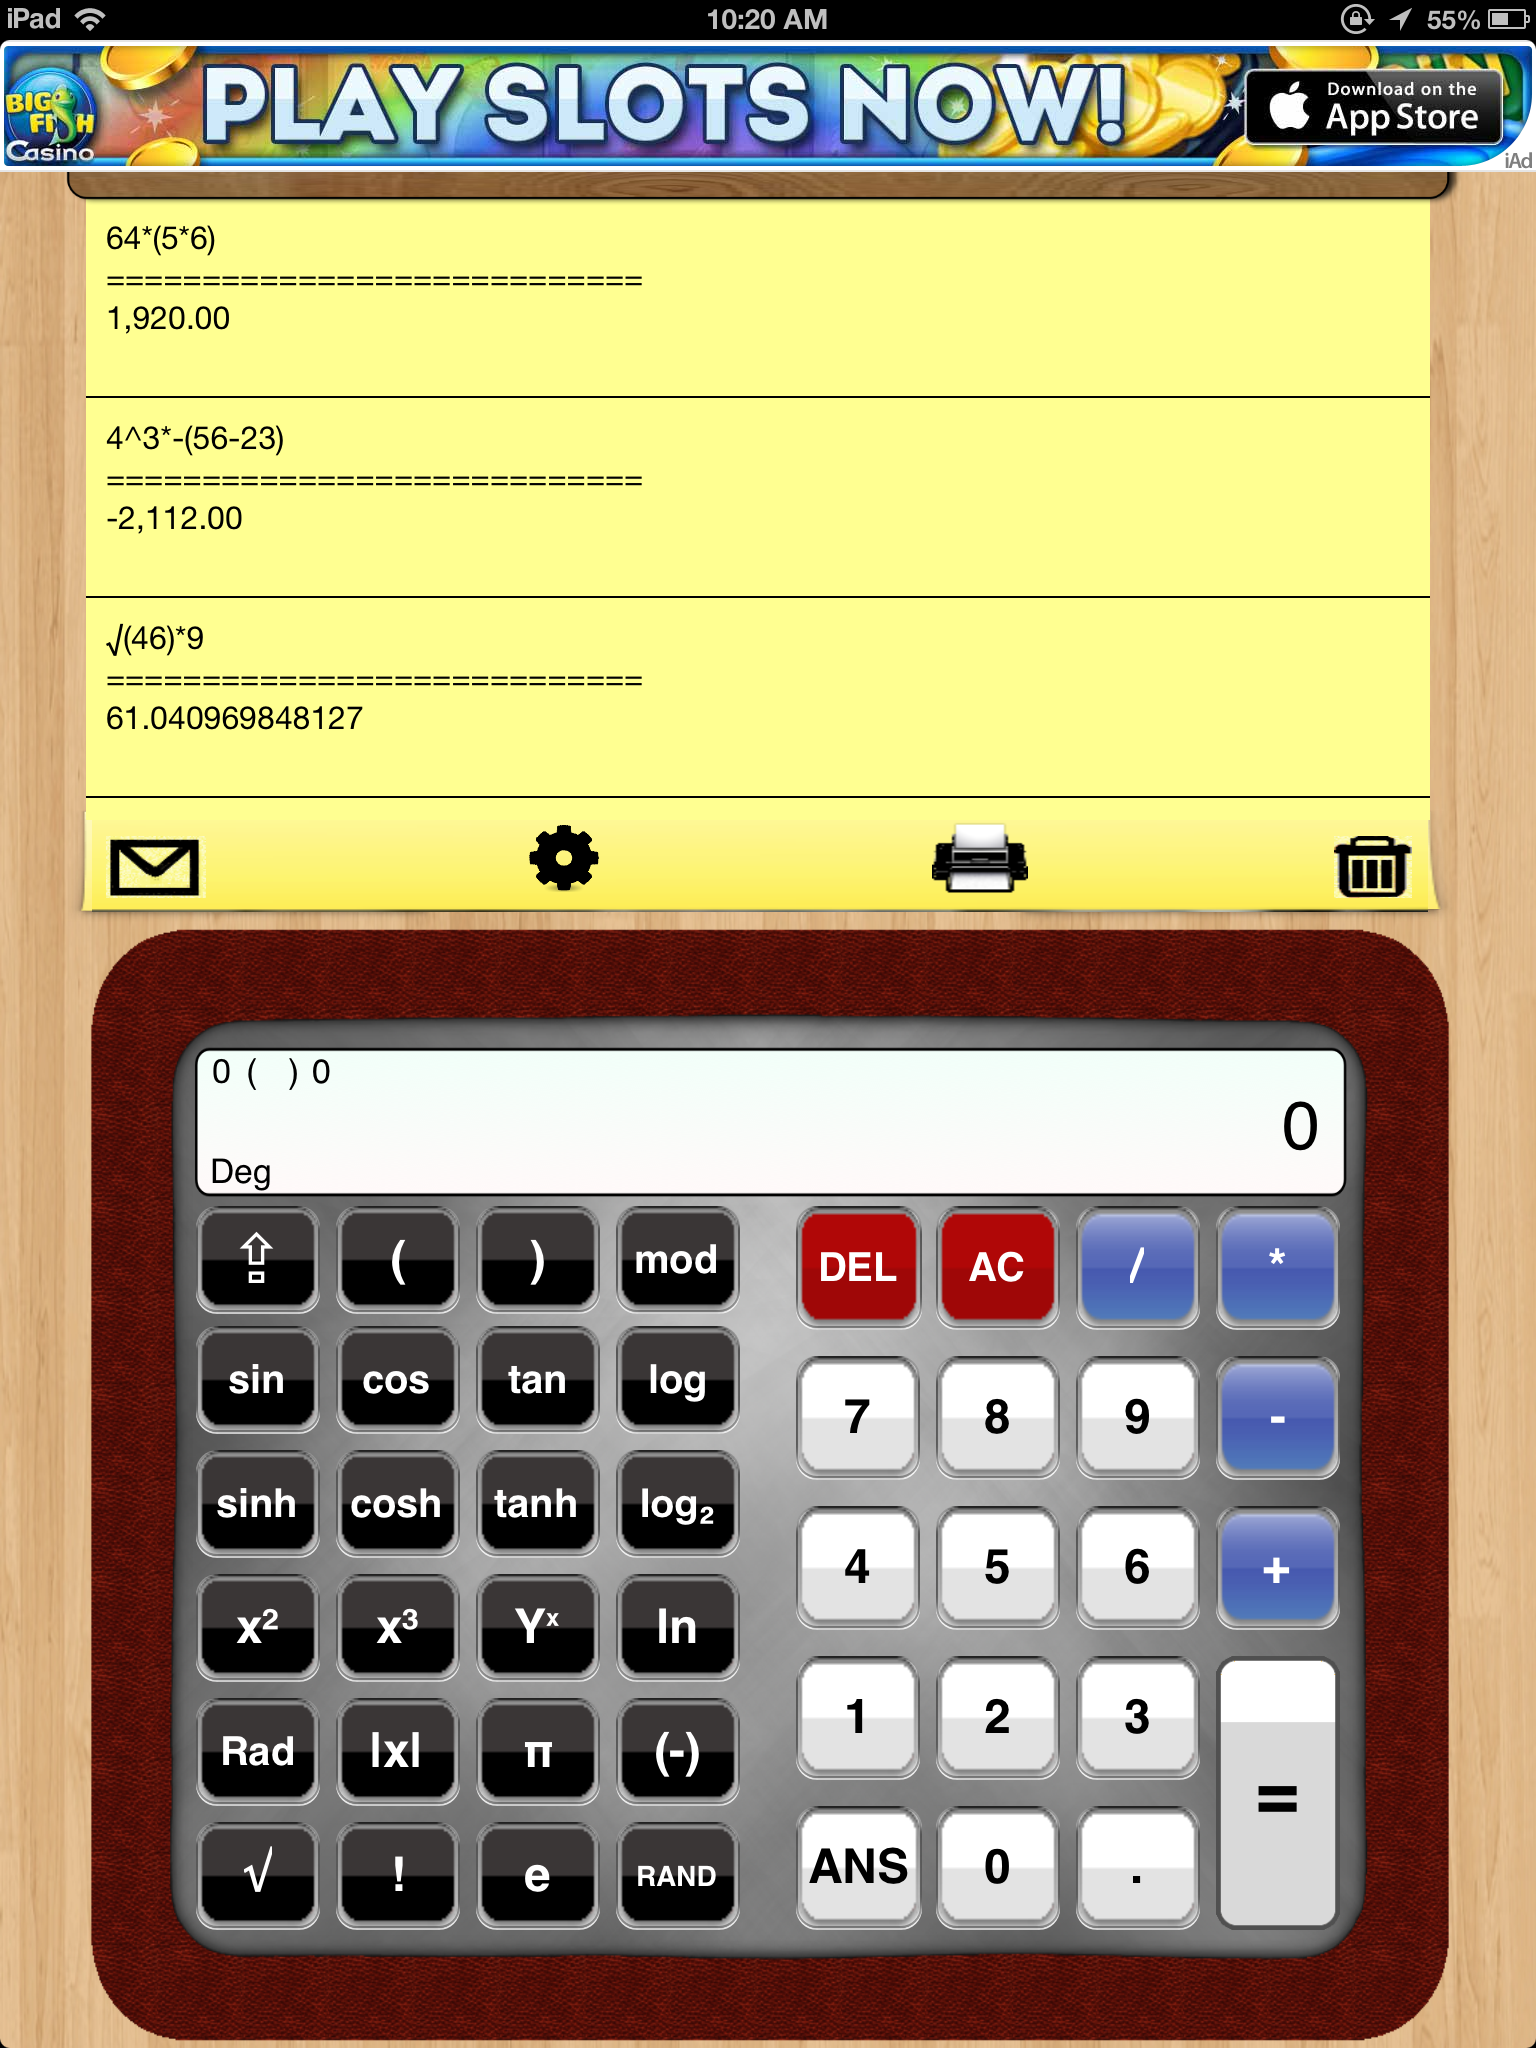 dysgraphia solutions for math ot s apps technology provides a document work environment for creating basic math problems create new and saves as rtf files three different keyboard providing a variety of